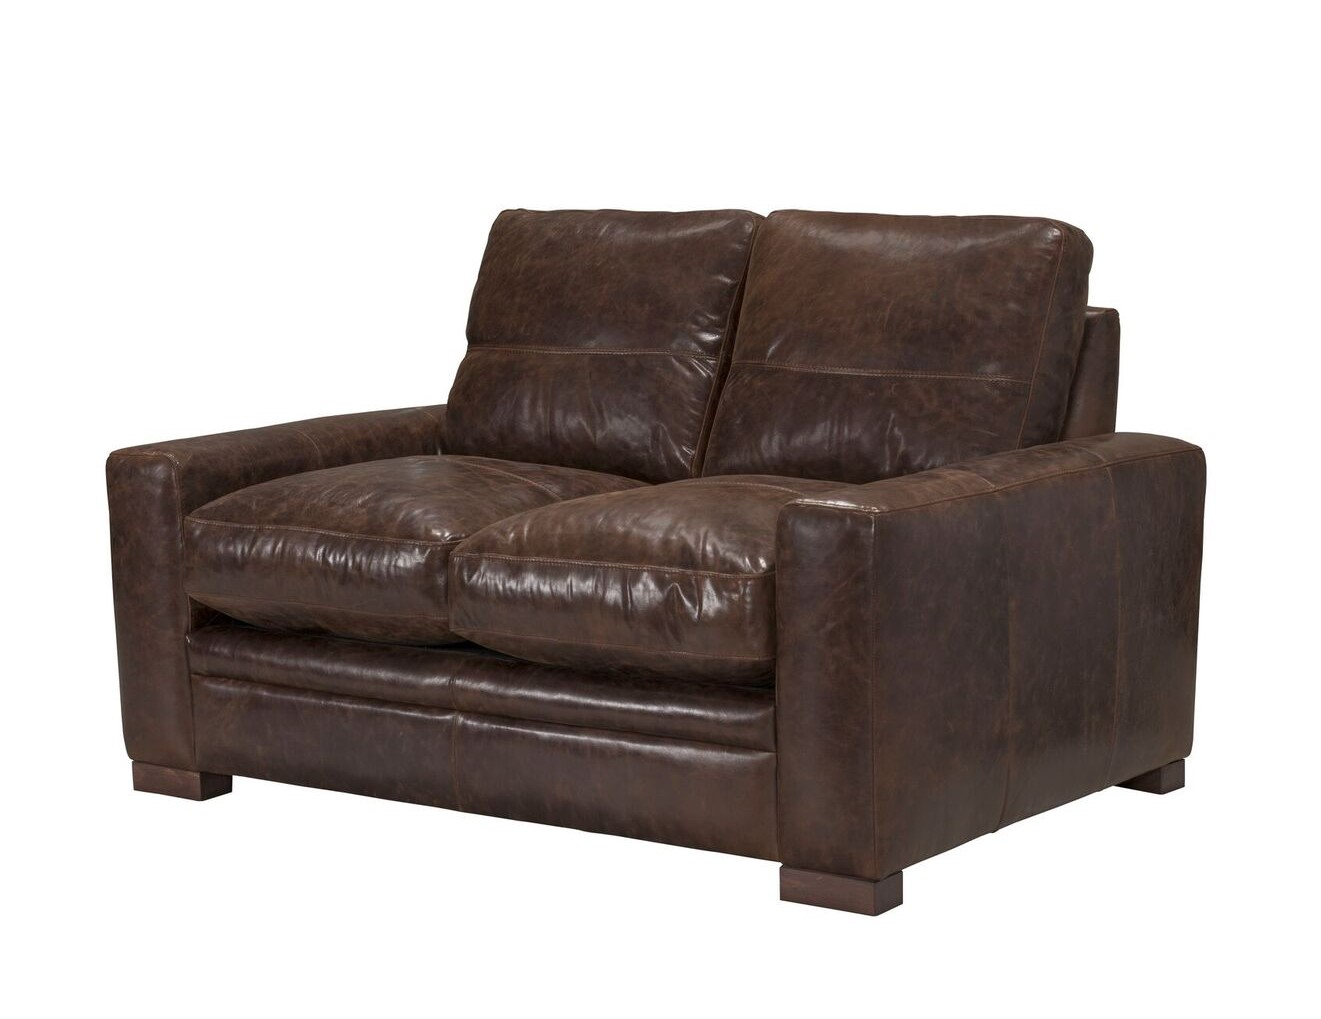 martino leather sofa chaise bed melbourne modern italian top grain set in